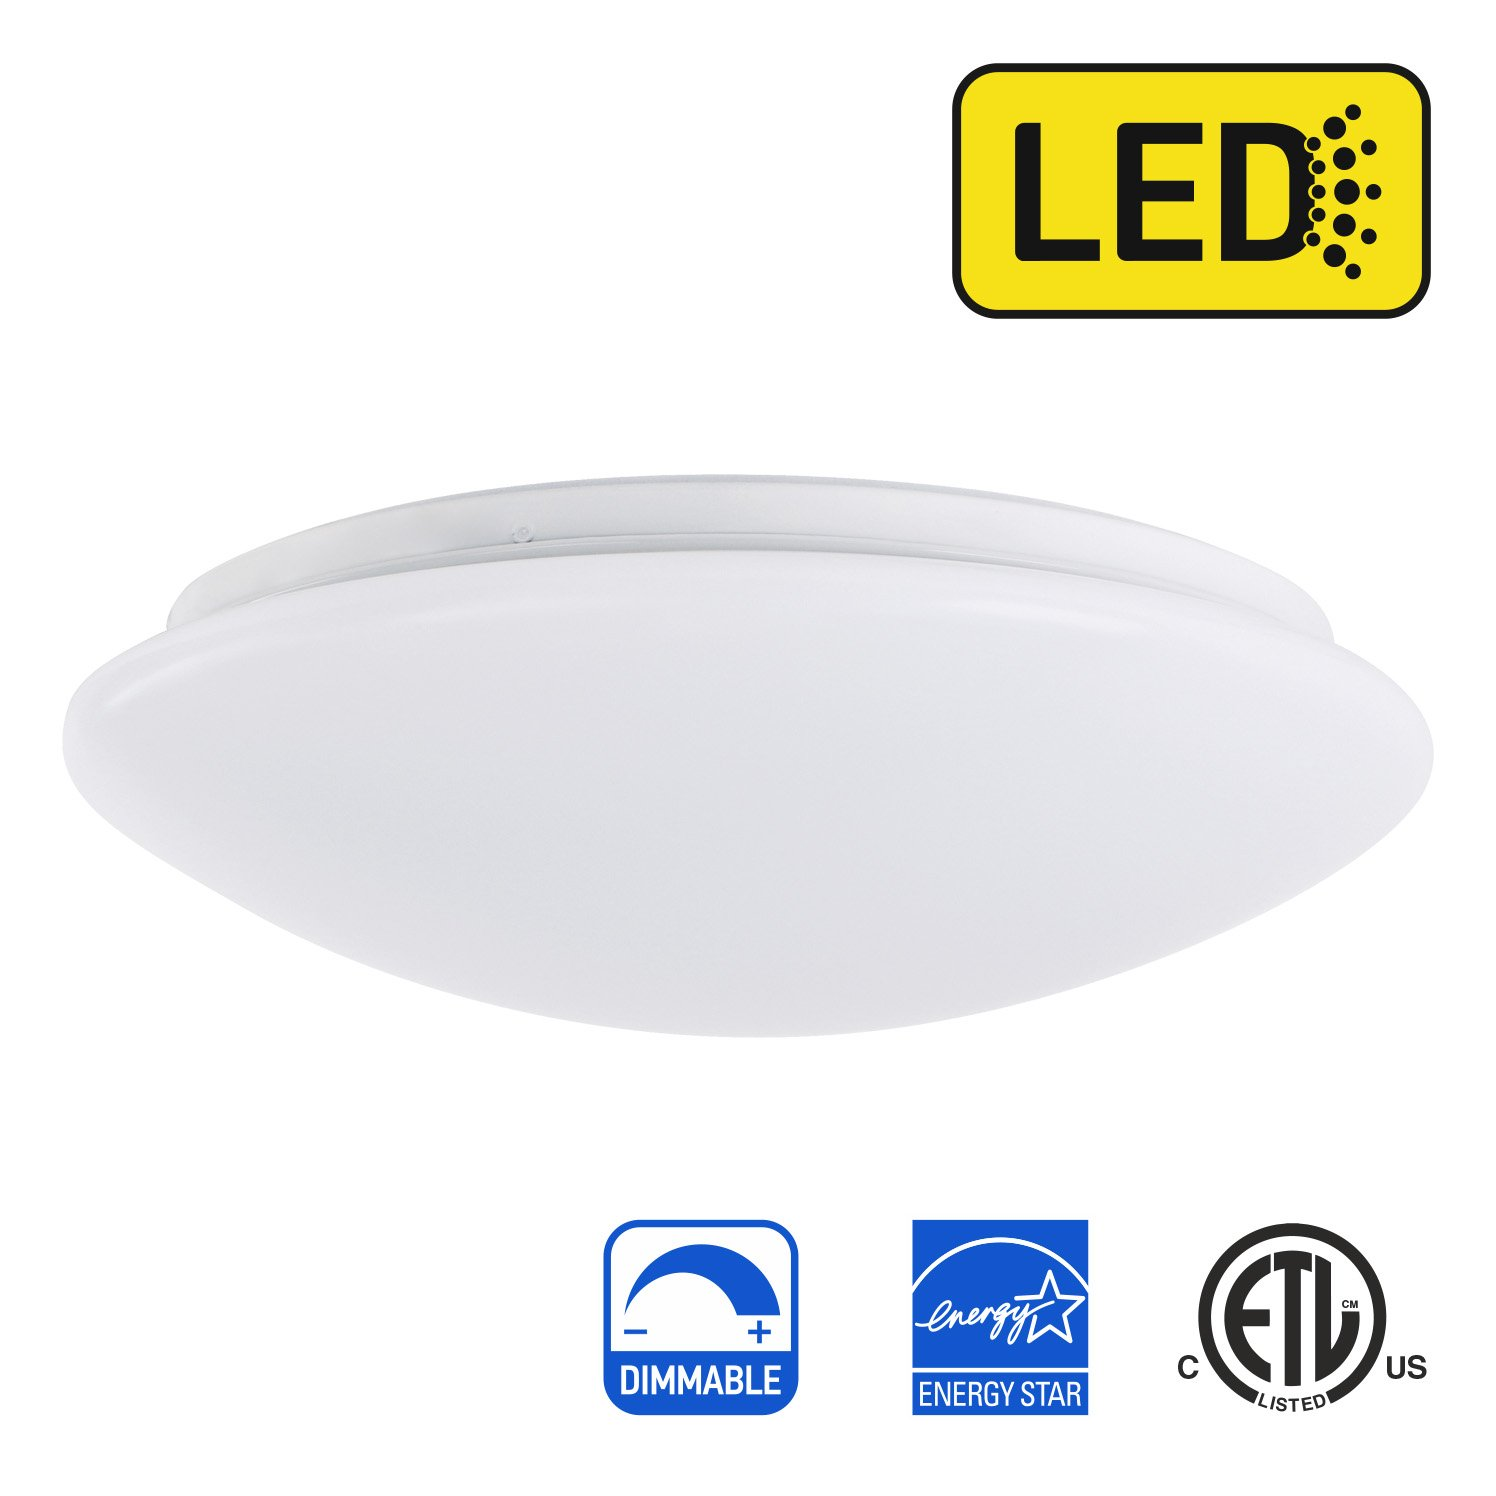 OSTWIN 11-inch LED Flush mount Ceiling Light MS Series 20W (100 Watt equivalent), Dimmable, 3000K (Warm white), 1734 Lumens, White Finish with Acrylic shade, ETL and ENERGY STAR listed